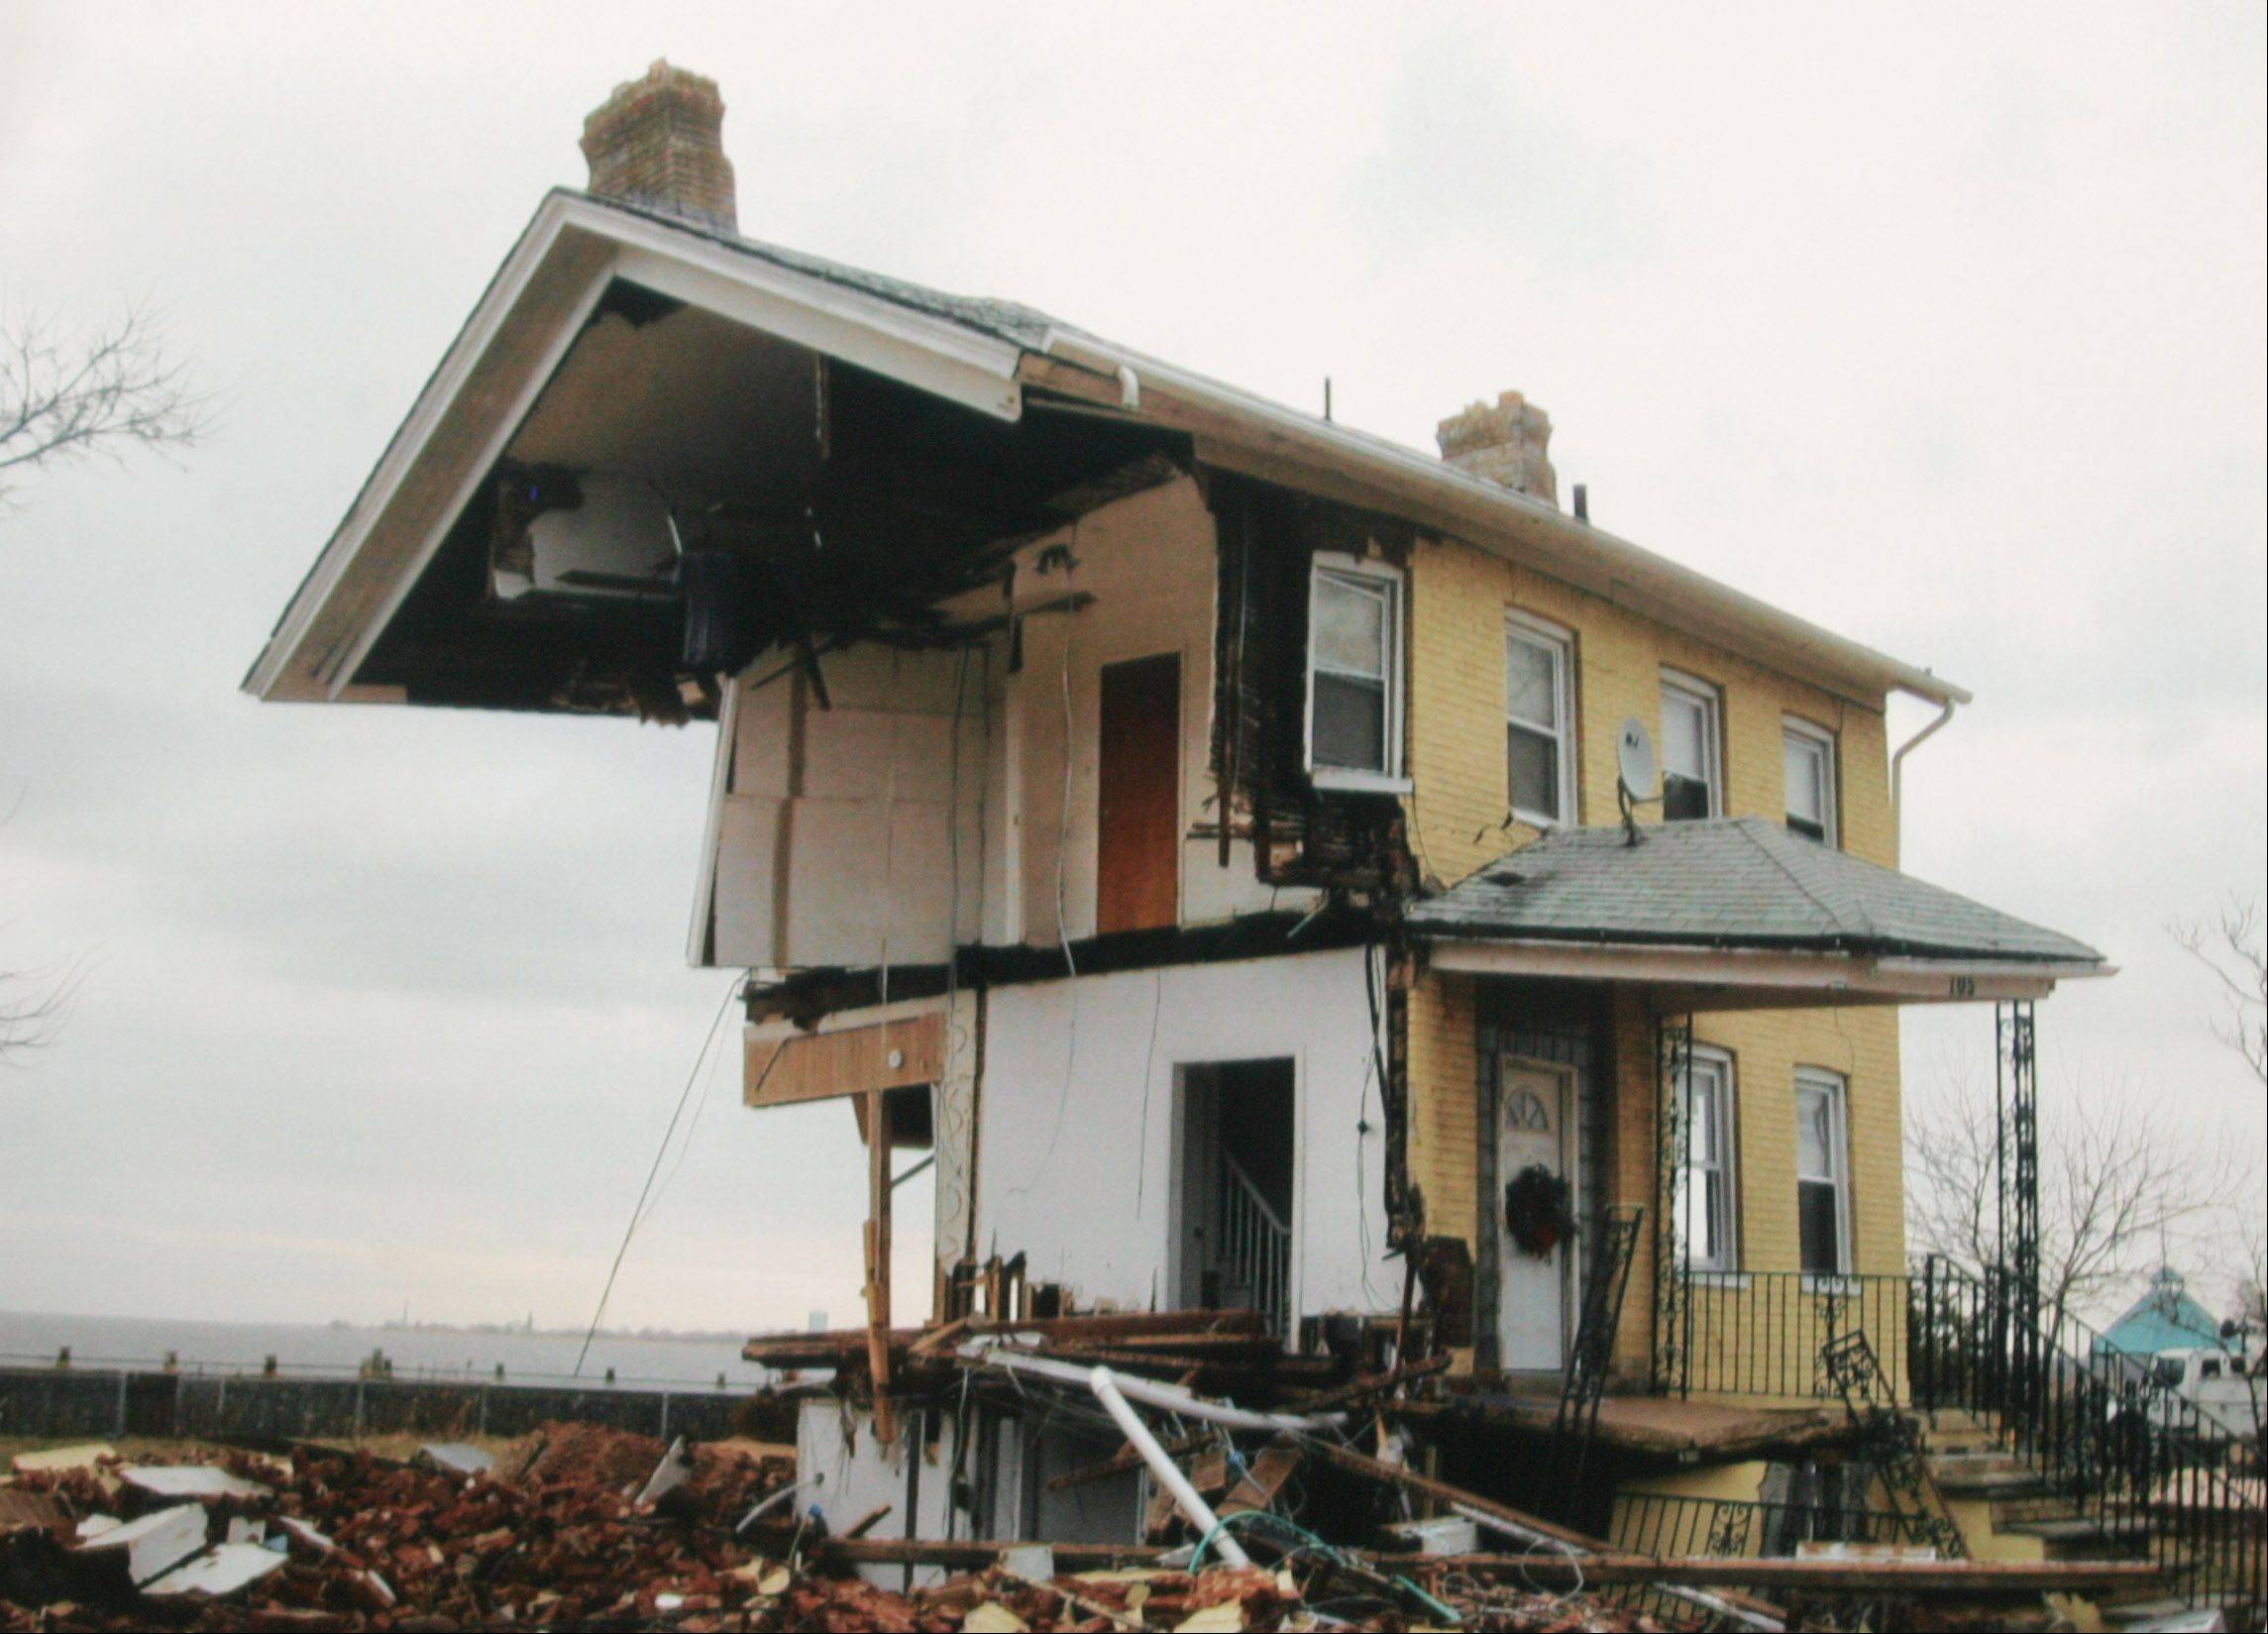 This is a devastated home on Front Street in Union Beach, N.J., after being hit by Hurricane Sandy.